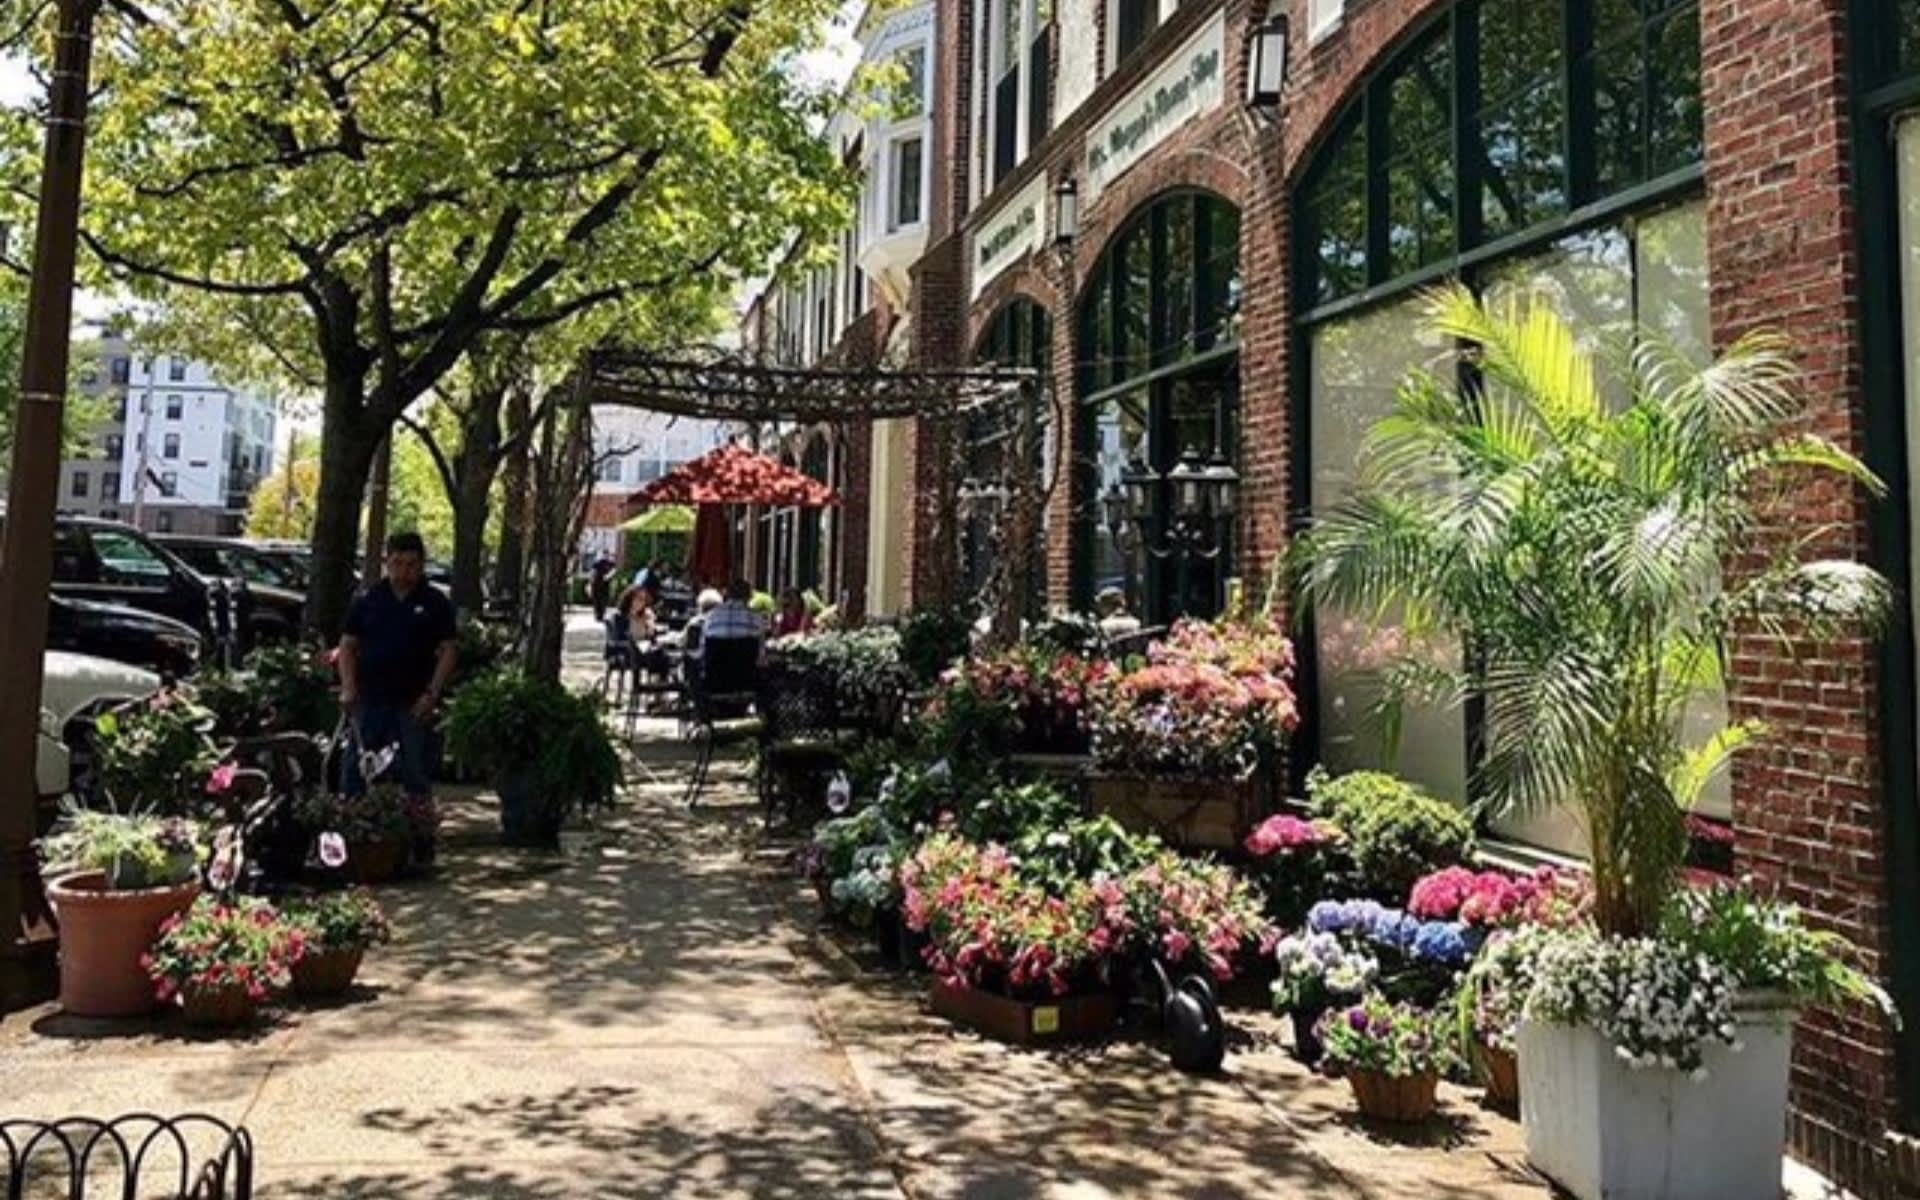 Bronxville picture